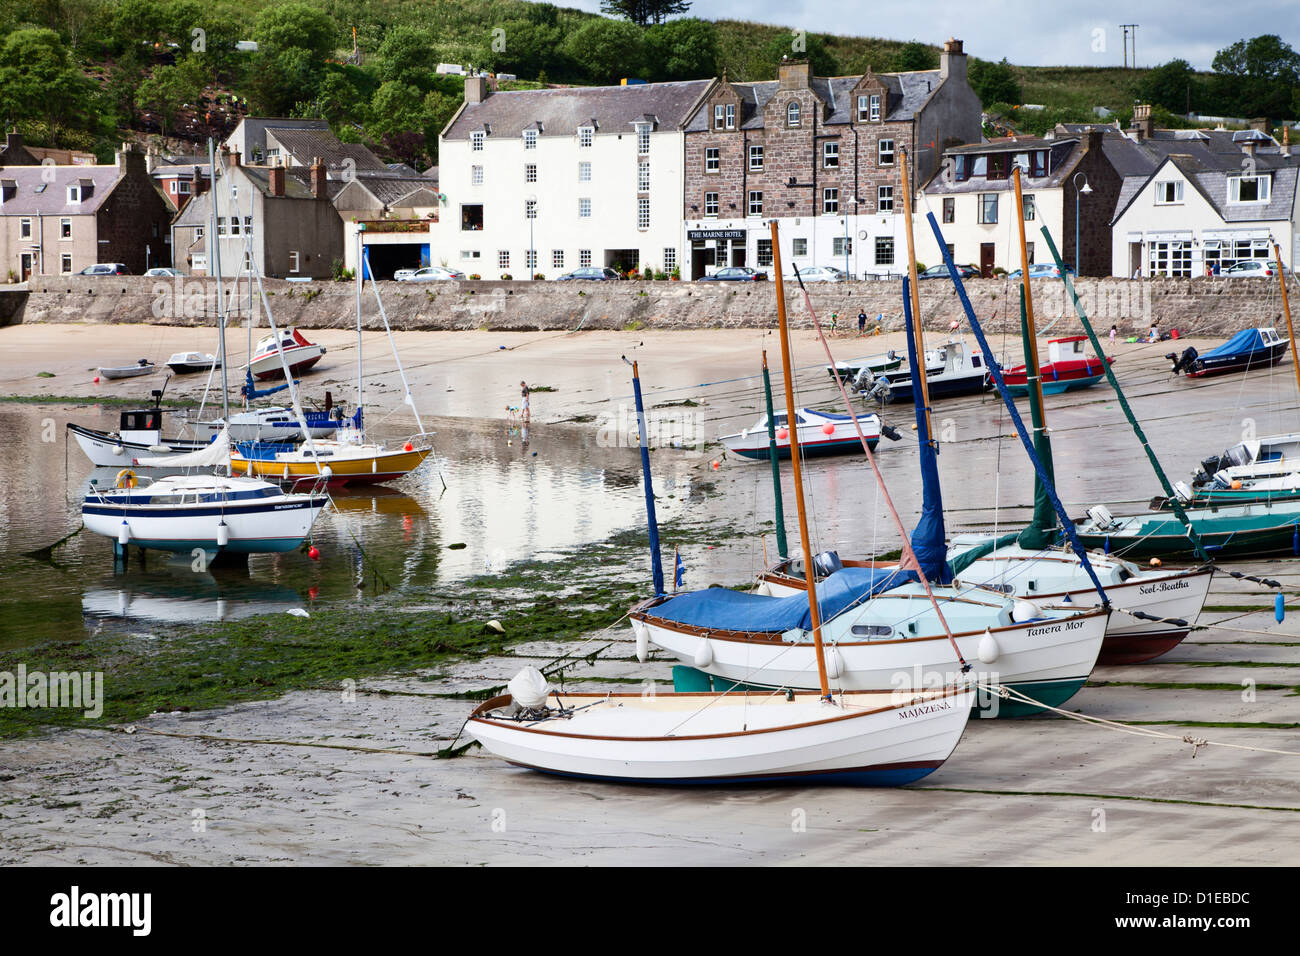 Beached yachts the Harbour at Stonehaven, Aberdeenshire, Scotland, United Kingdom, Europe - Stock Image